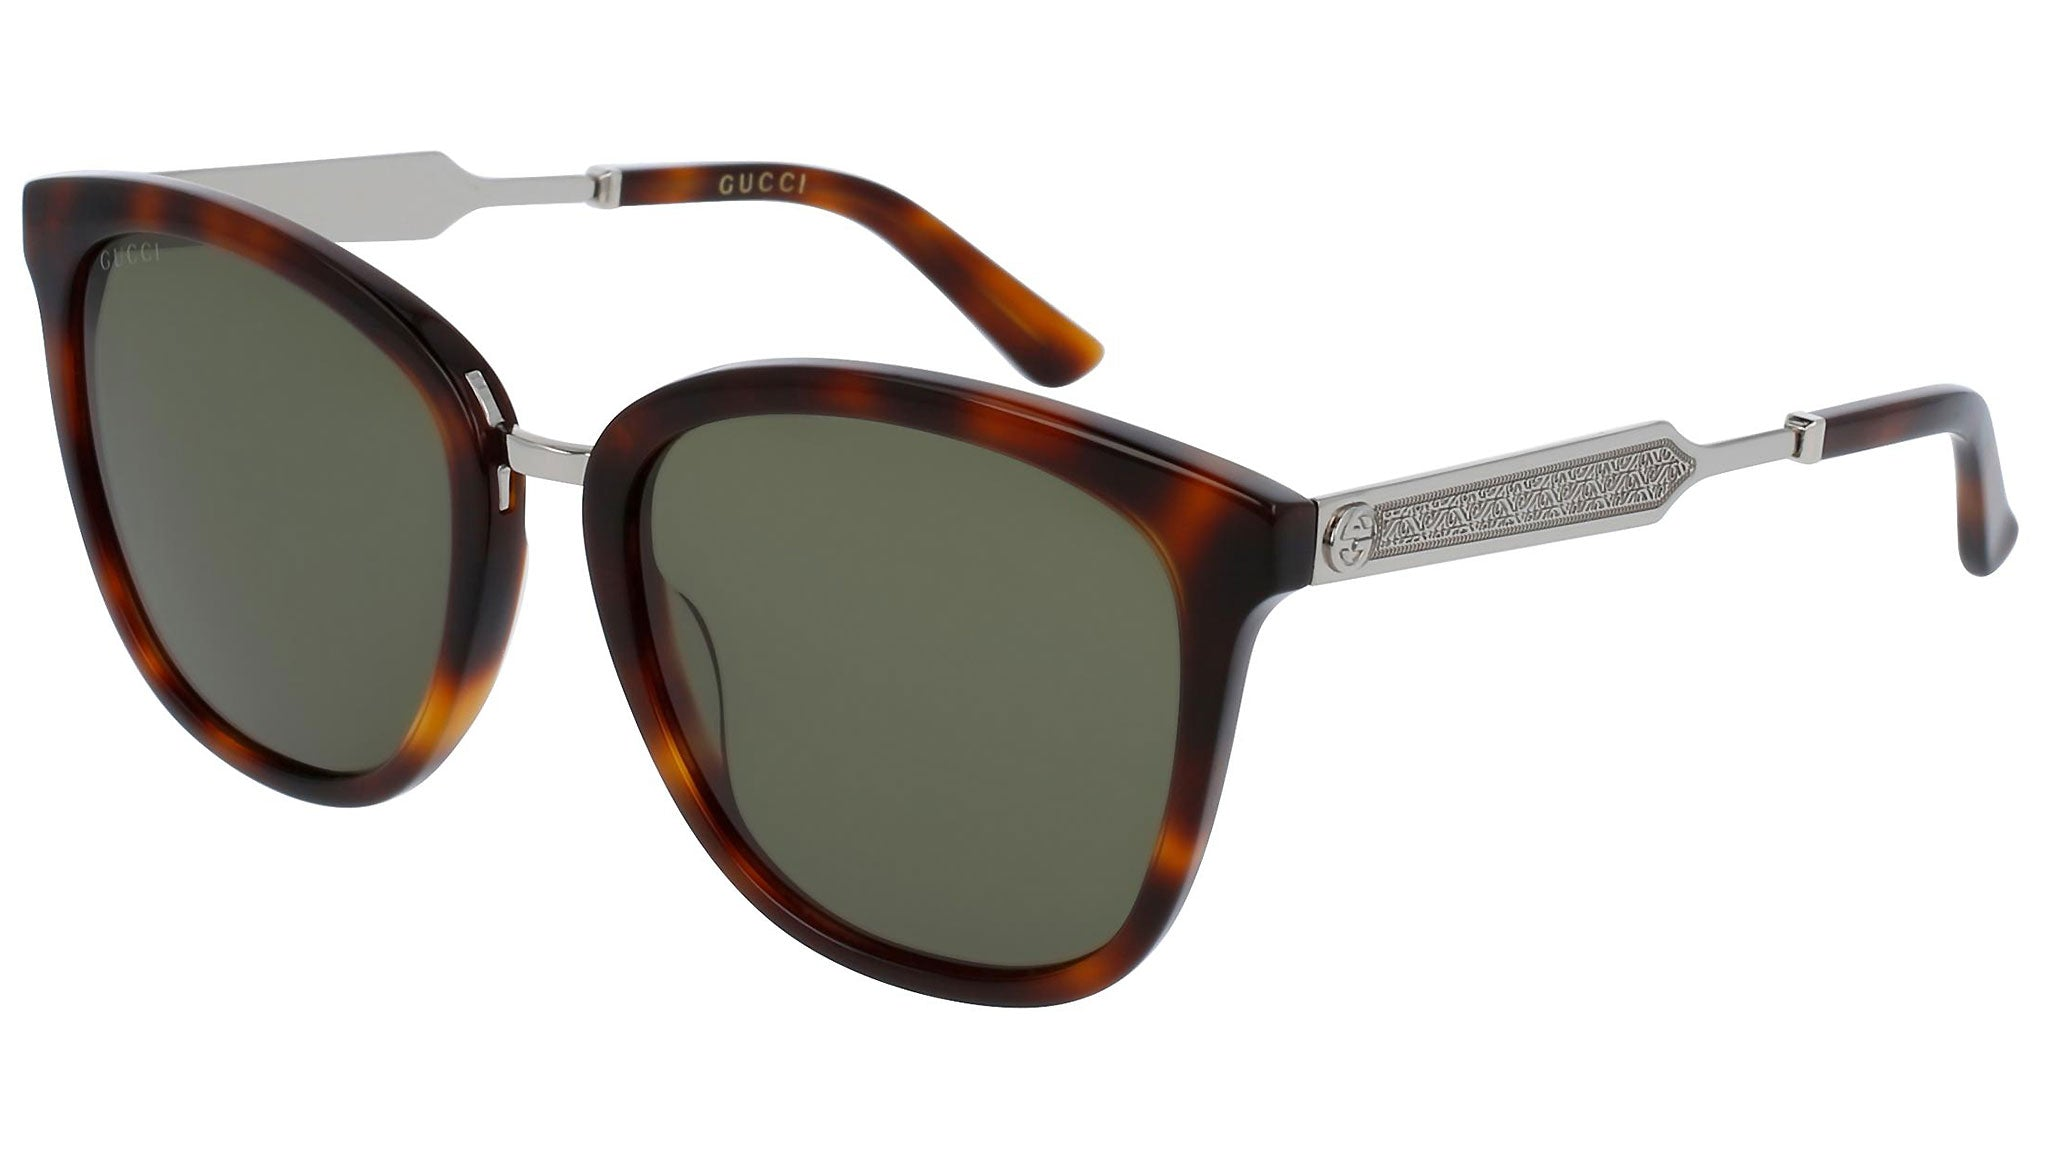 GG0073S silver havana and green